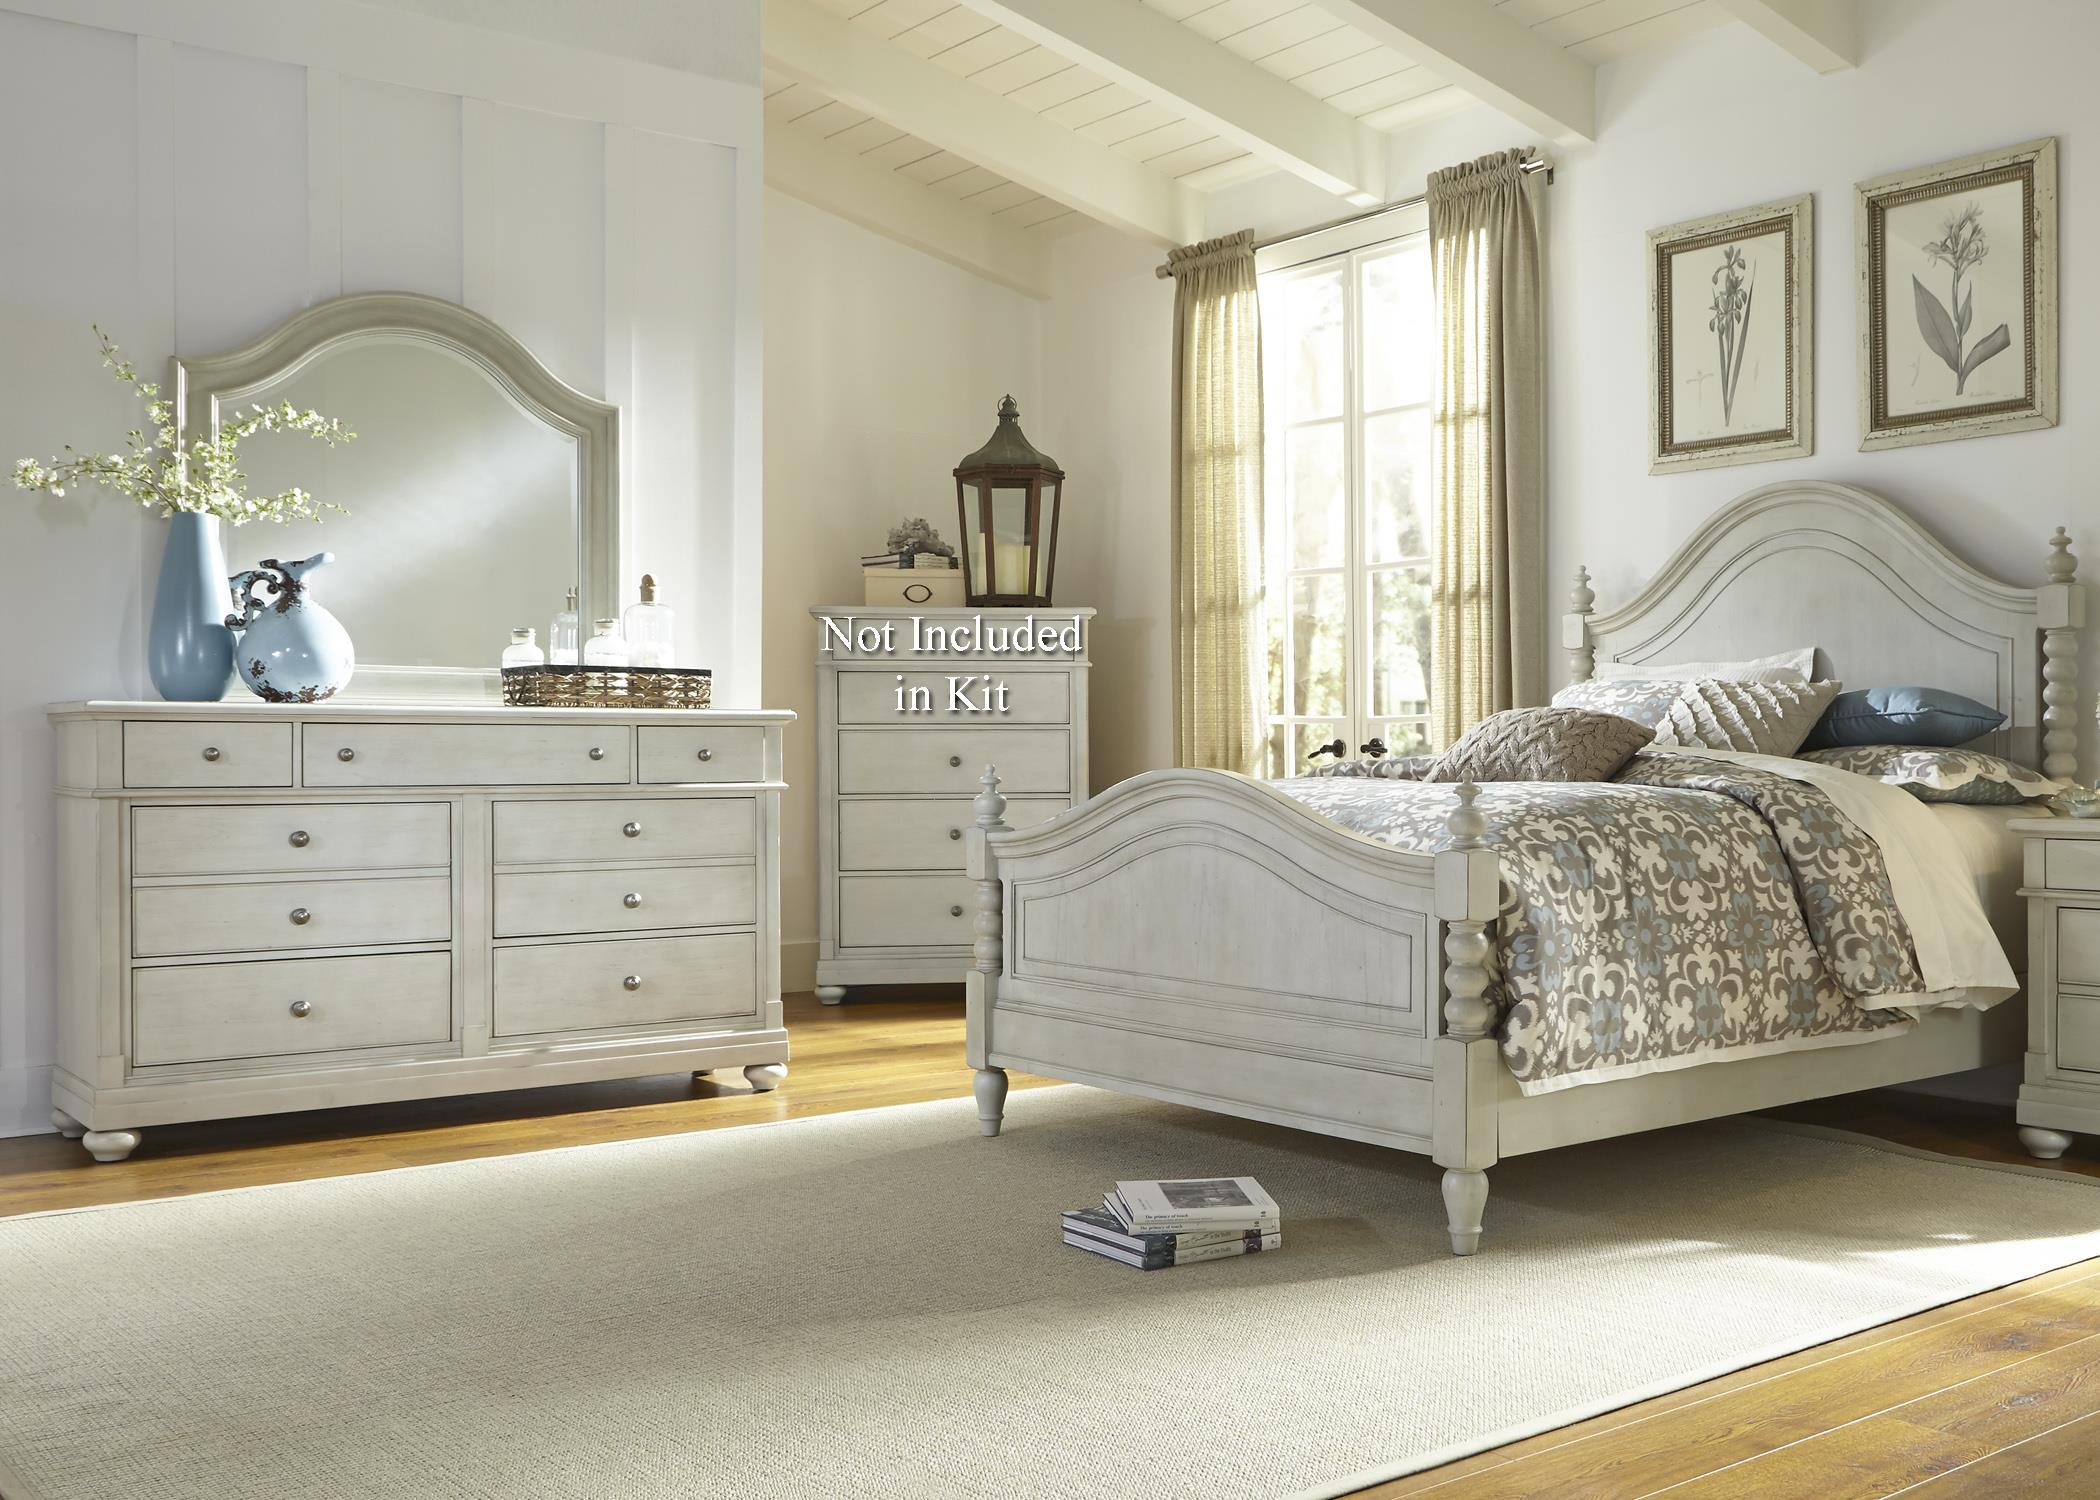 Liberty Furniture Harbor View King Bedroom Group - Item Number: 731-BR-KPSDM